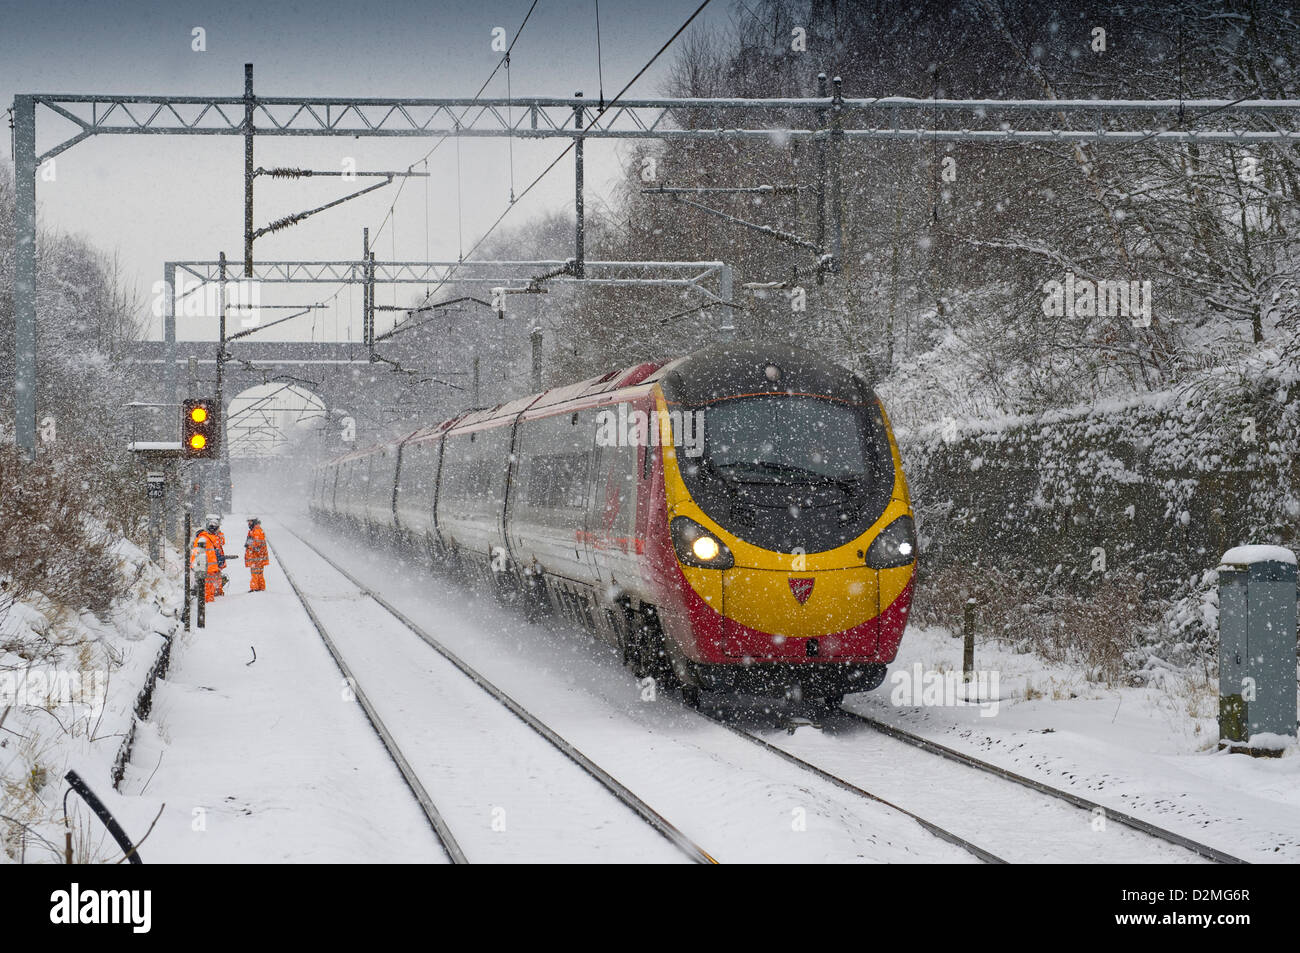 In snow a Virgin Trains Class 390 Pendolino heads towards